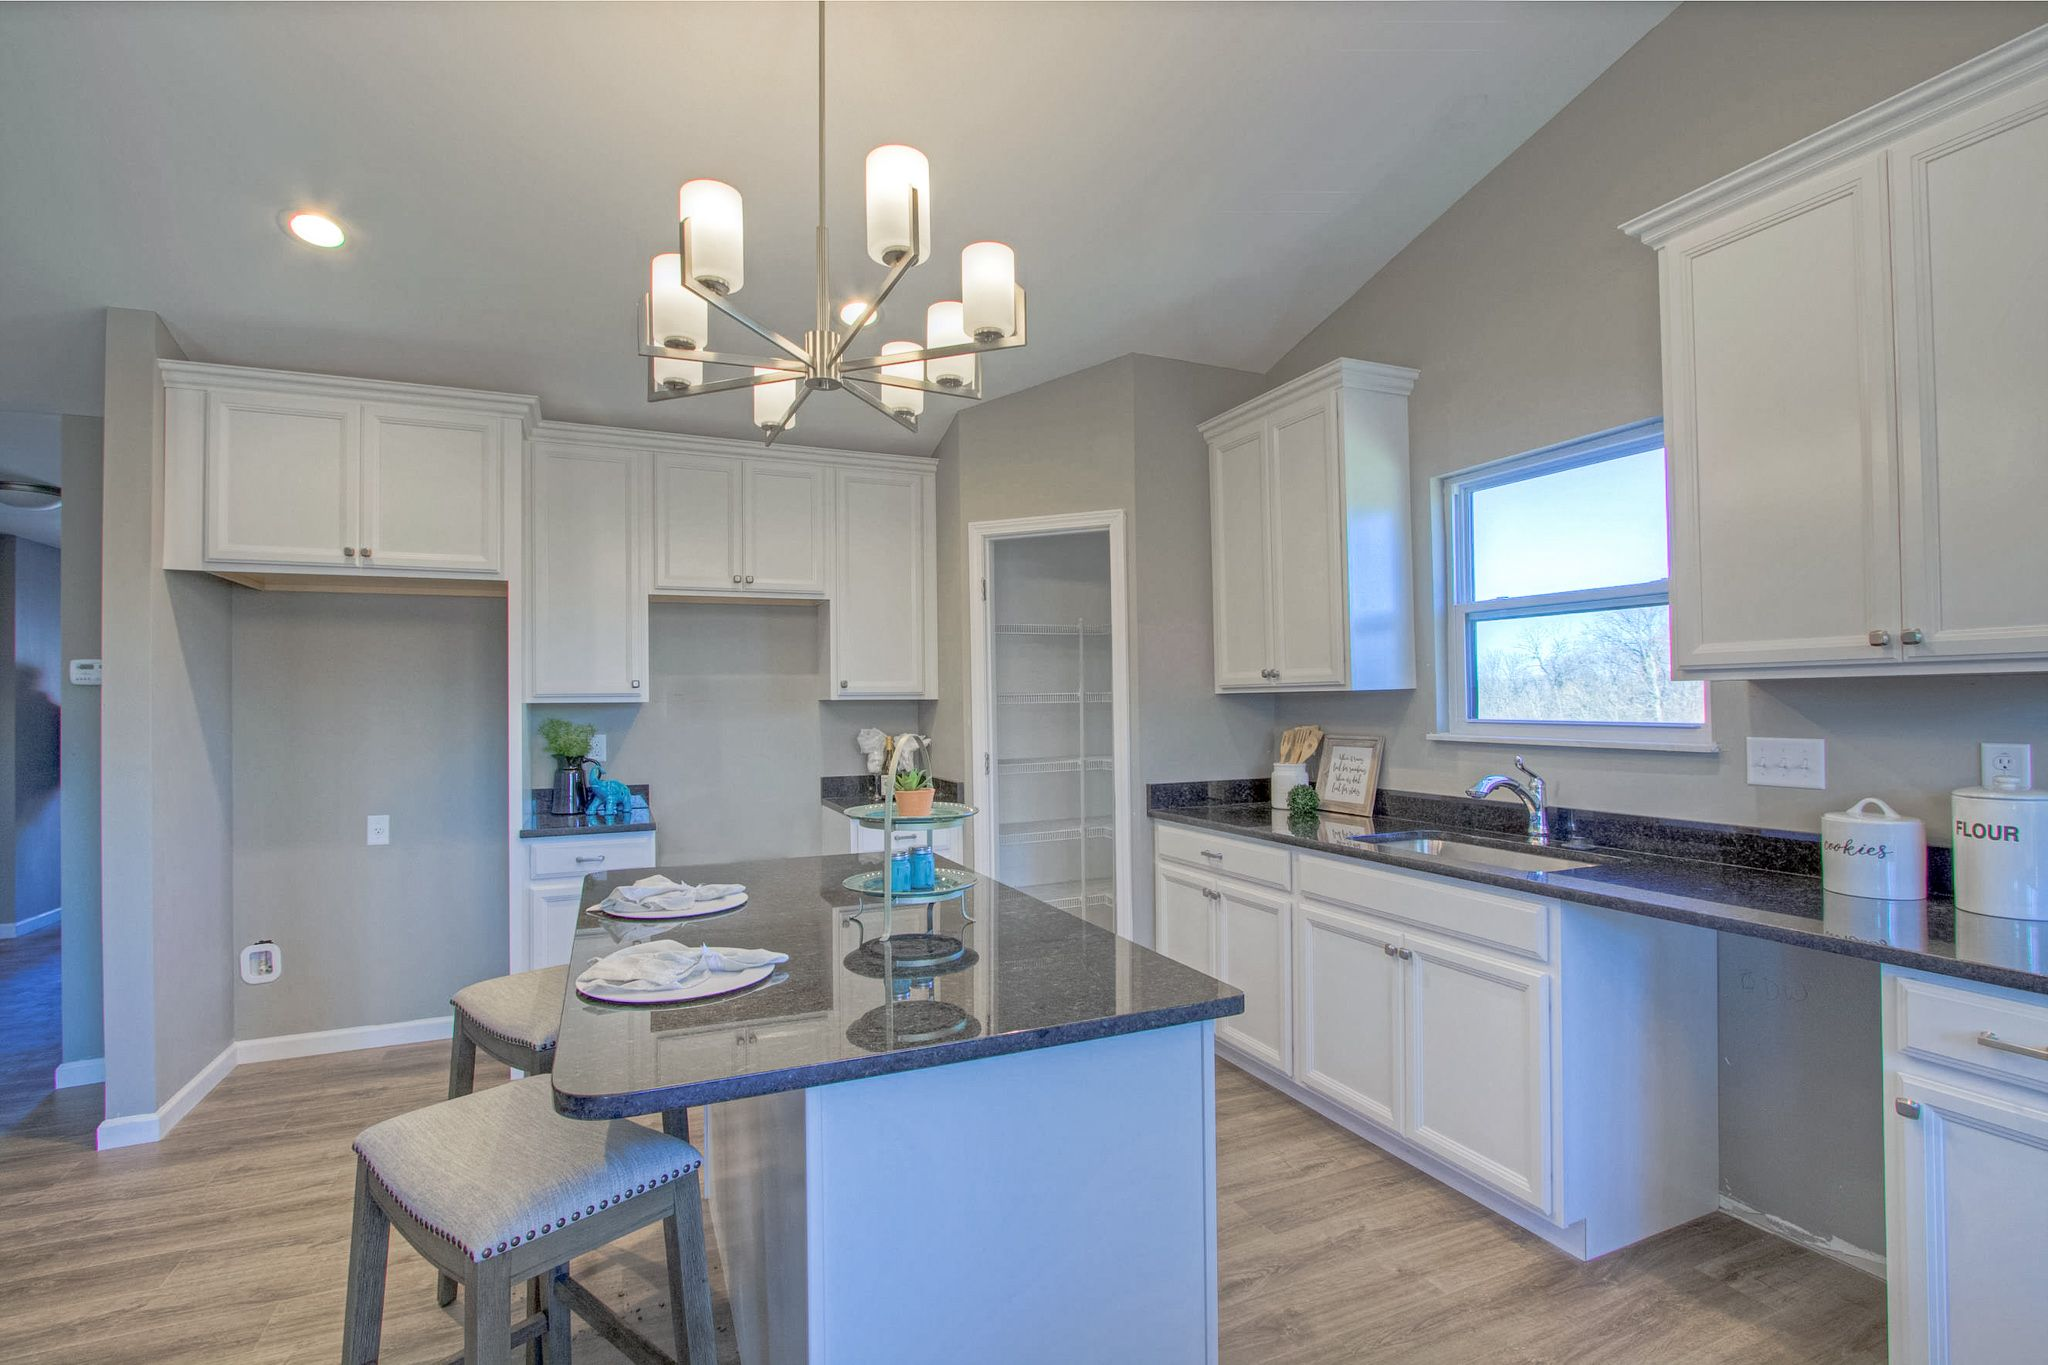 Kitchen featured in the Houston B By C.A. Jones, Inc.  in St. Louis, IL